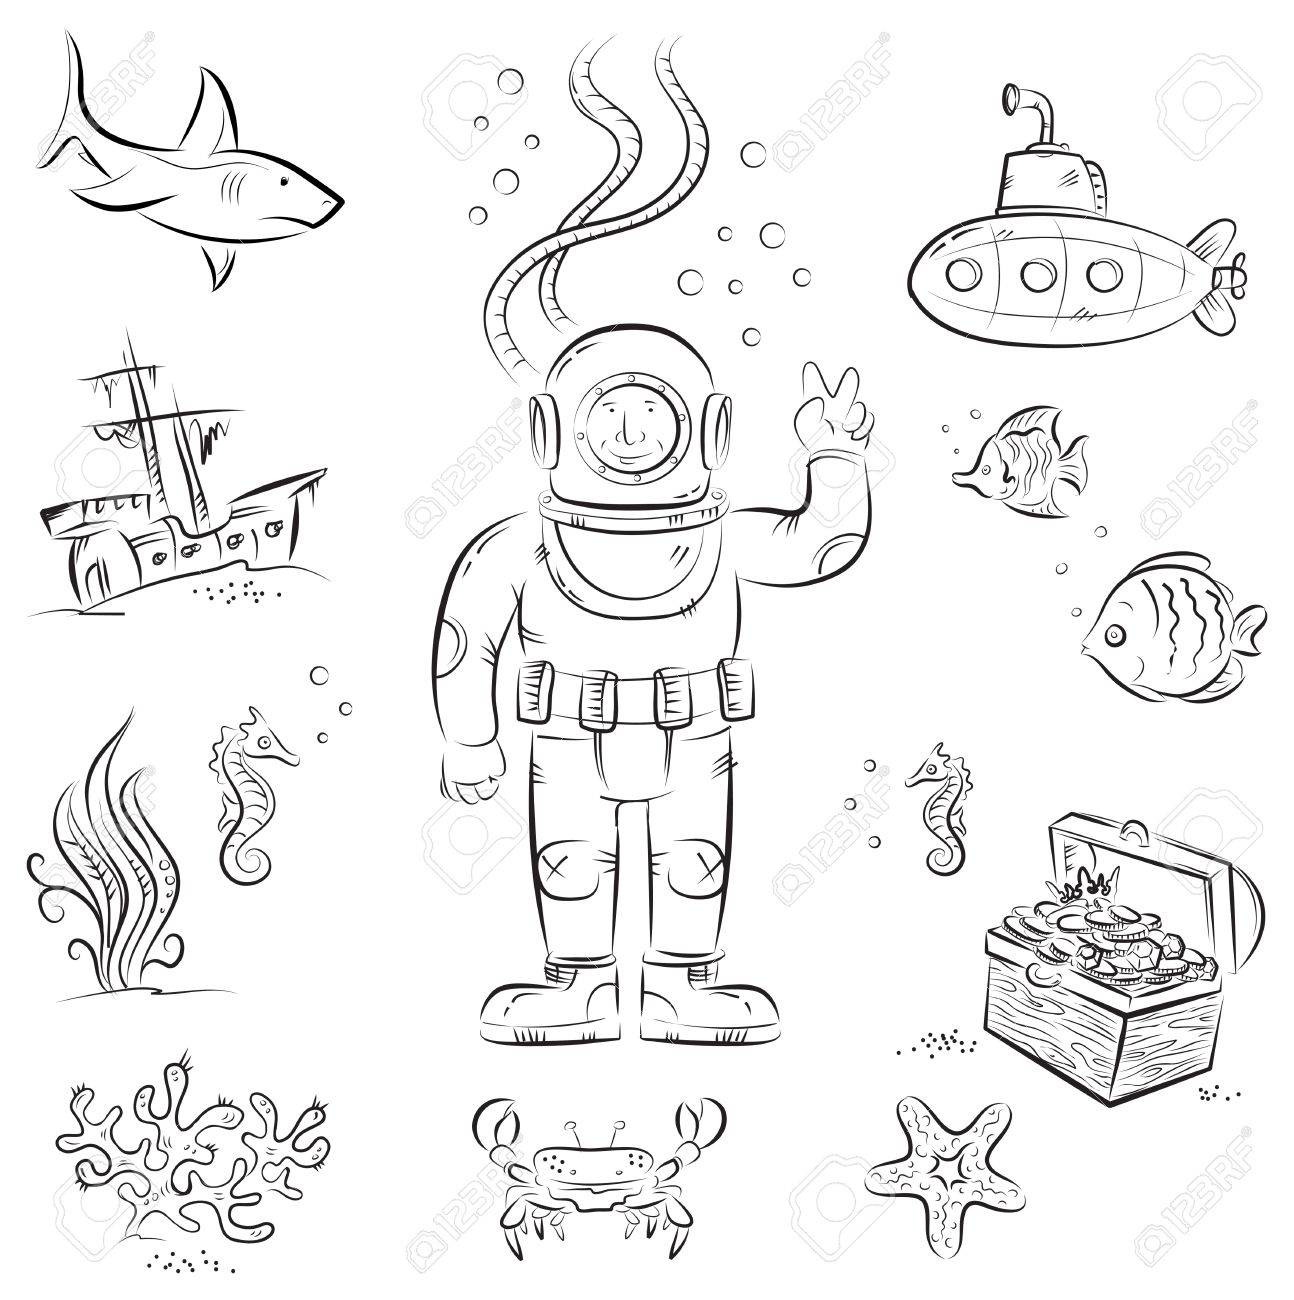 1294x1300 Sketch Set Of Funny Cartoon Izolated Objects On Underwater Diving